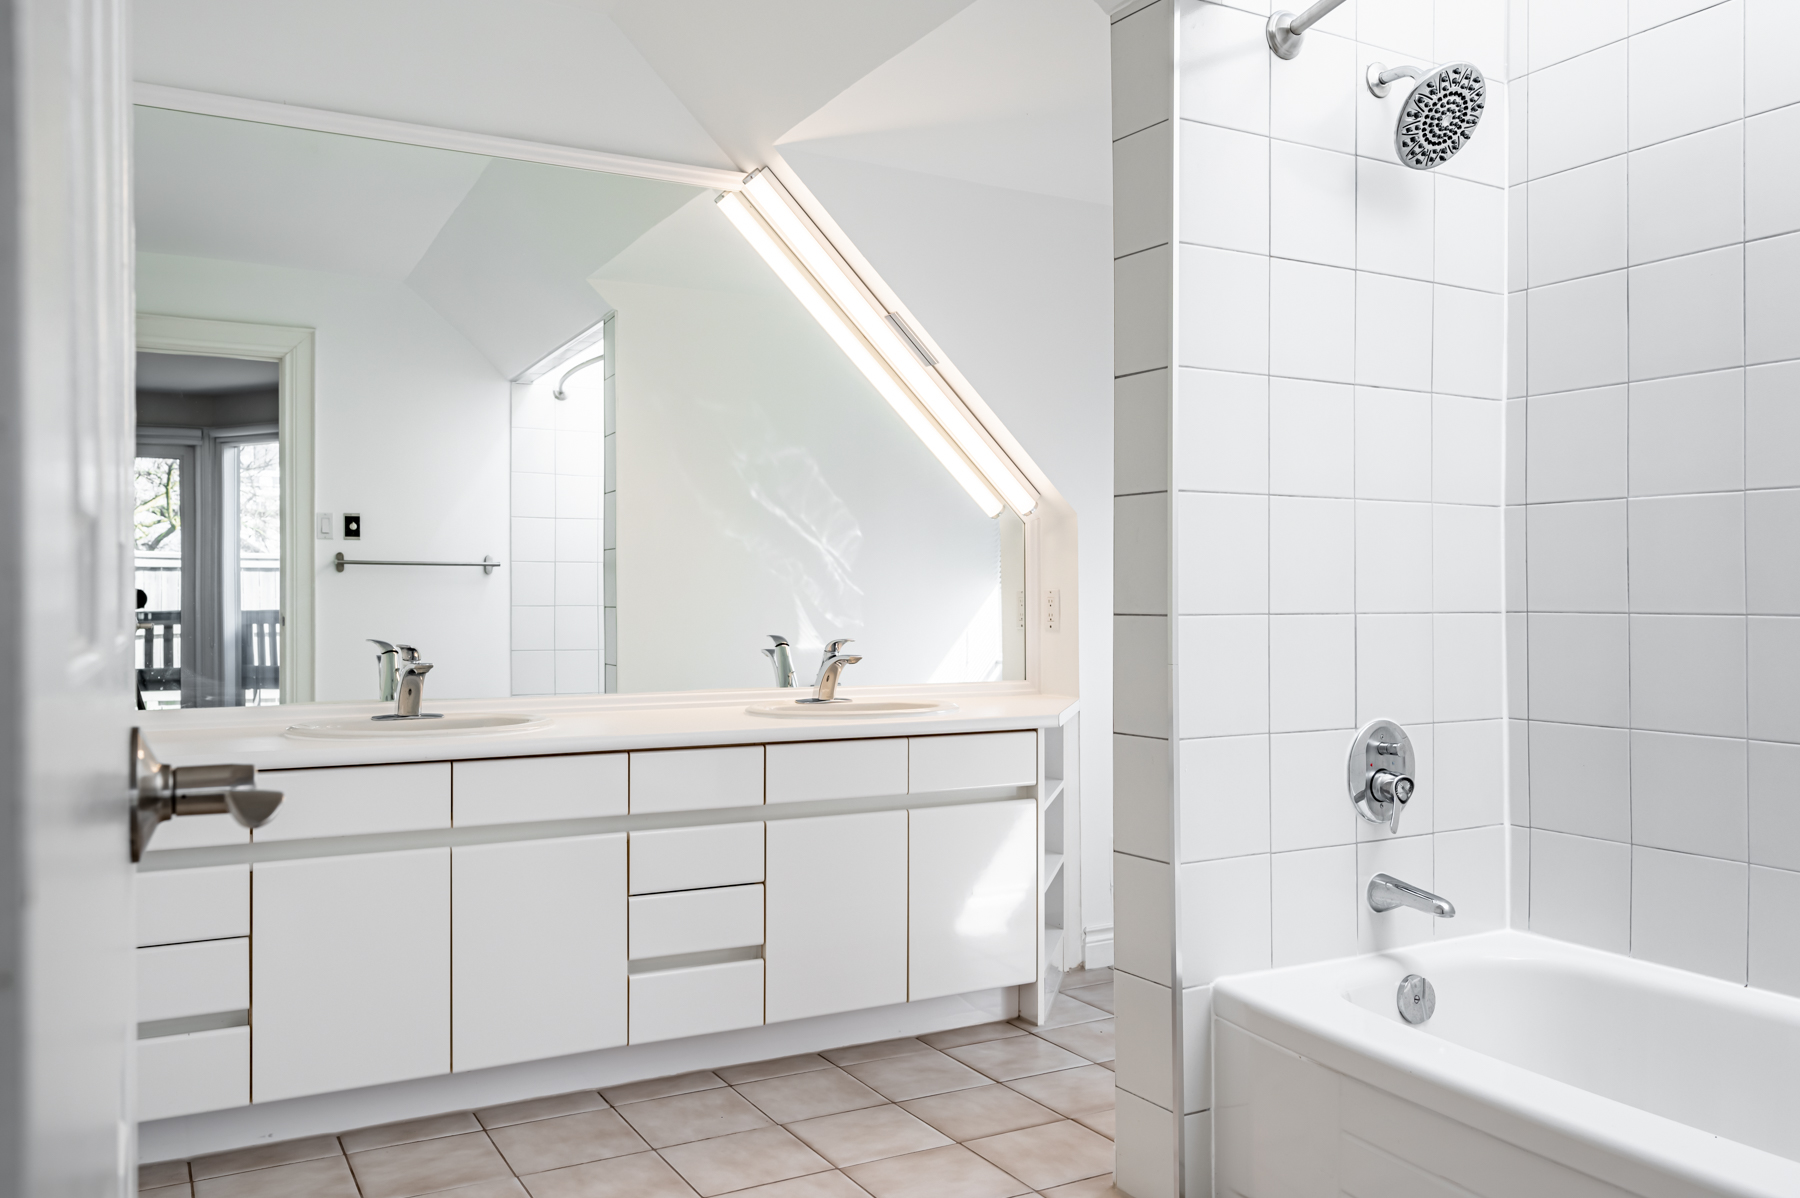 98 Bedford Rd – 5-piece ensuite bath with his and her sinks.